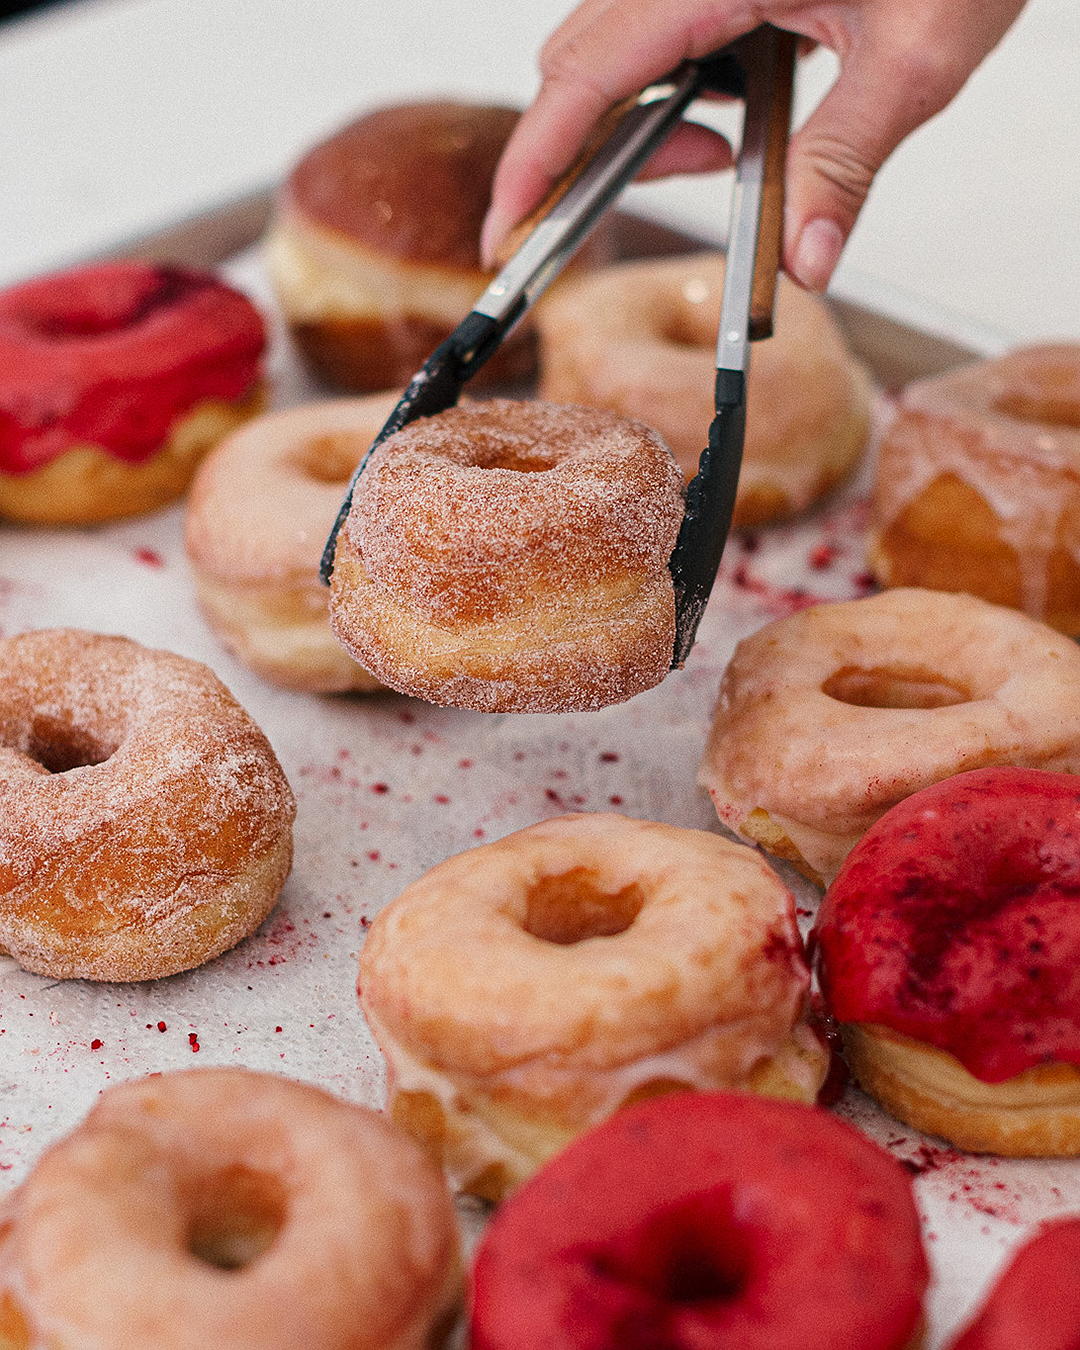 Someone picks up a deliciously sugary doughnut from doe donuts.